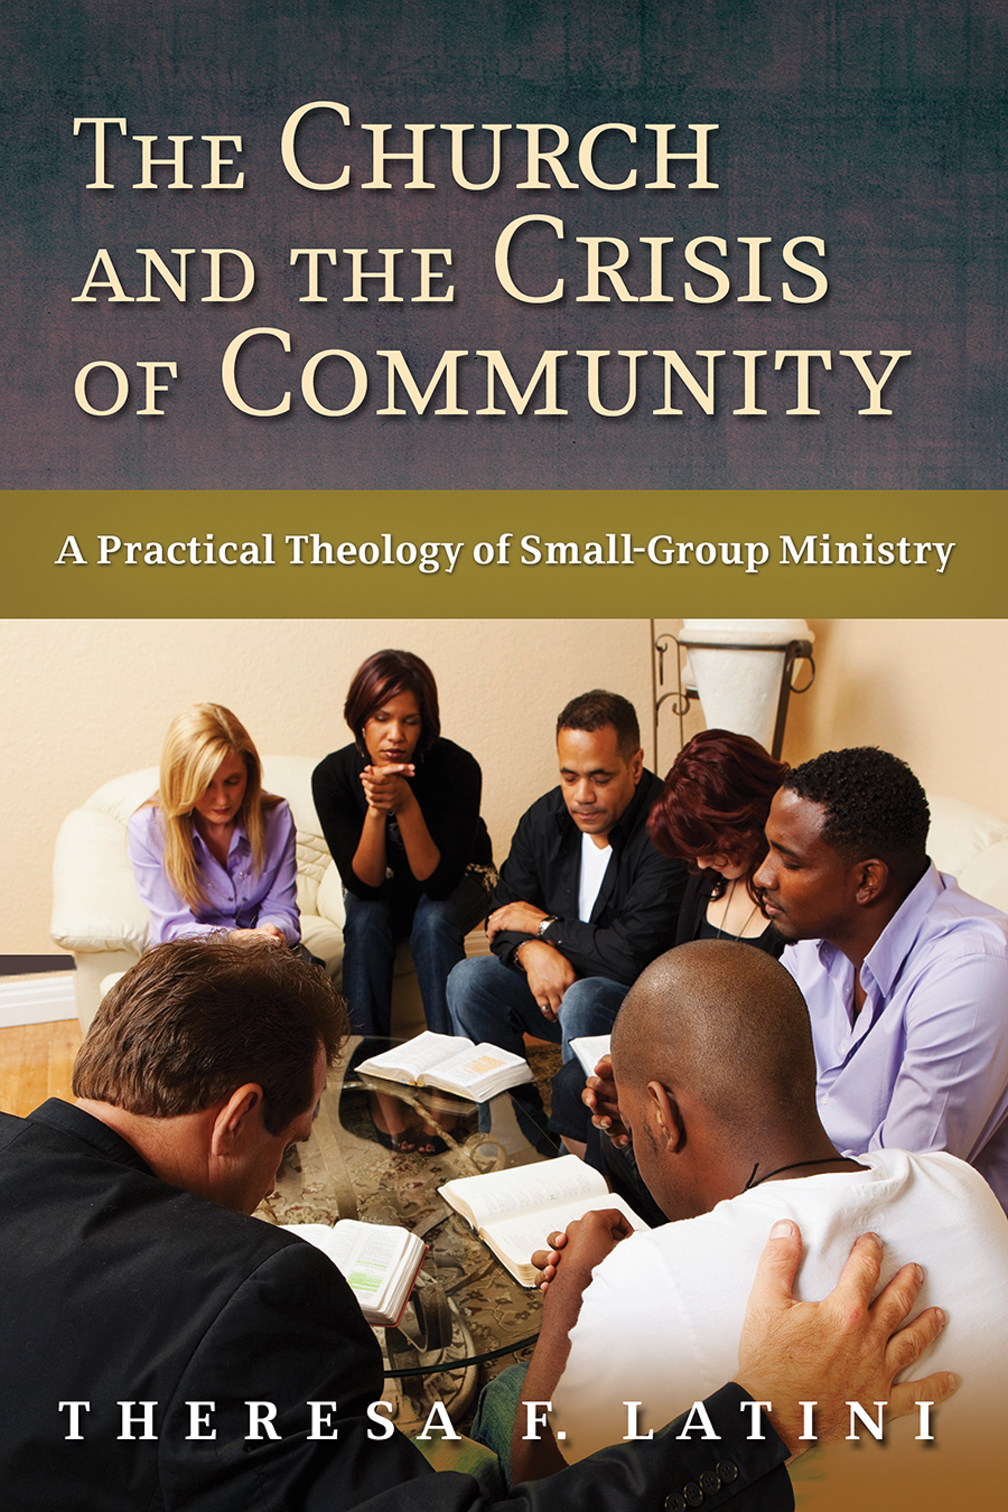 The Church and the Crisis of Community